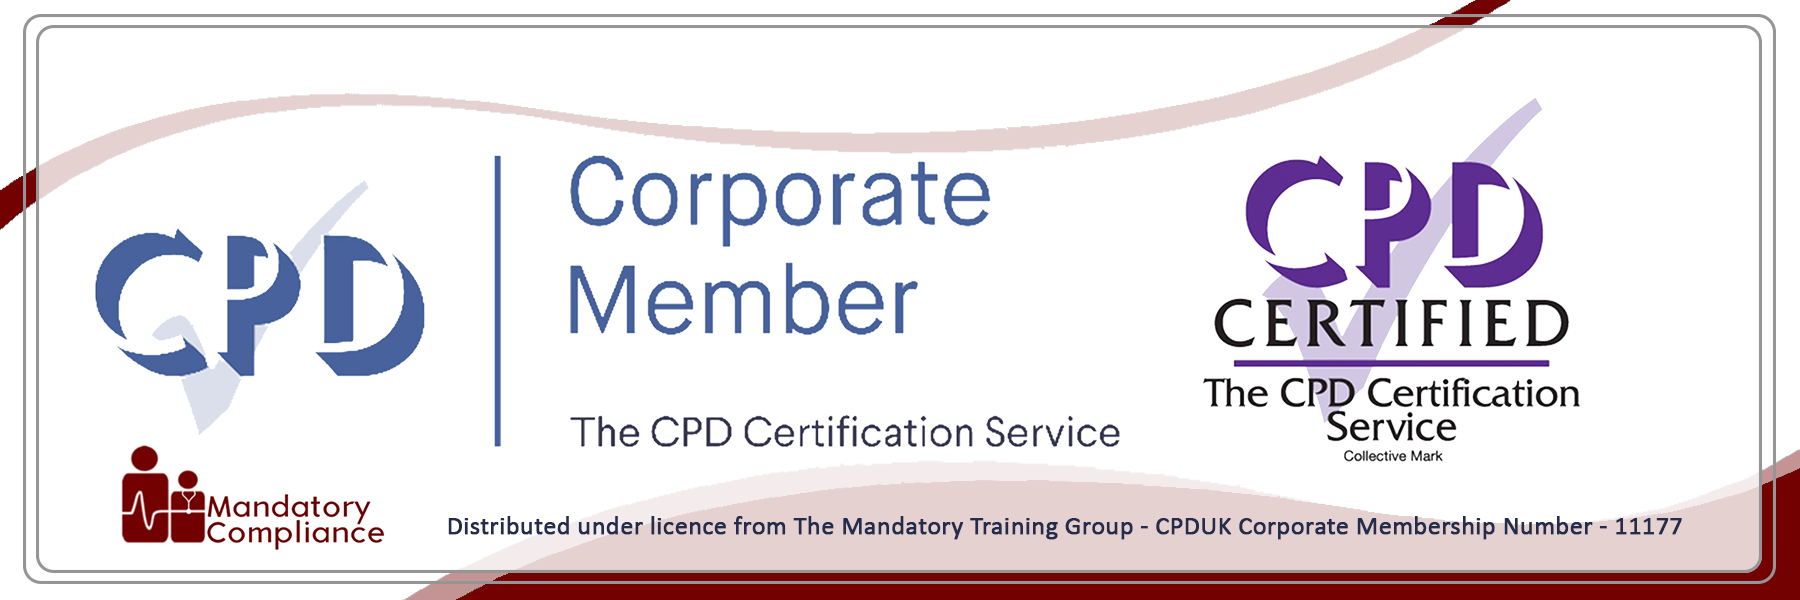 Statutory Duty of Candour - Online Training Course - CPD Accredited - Mandatory Compliance UK -